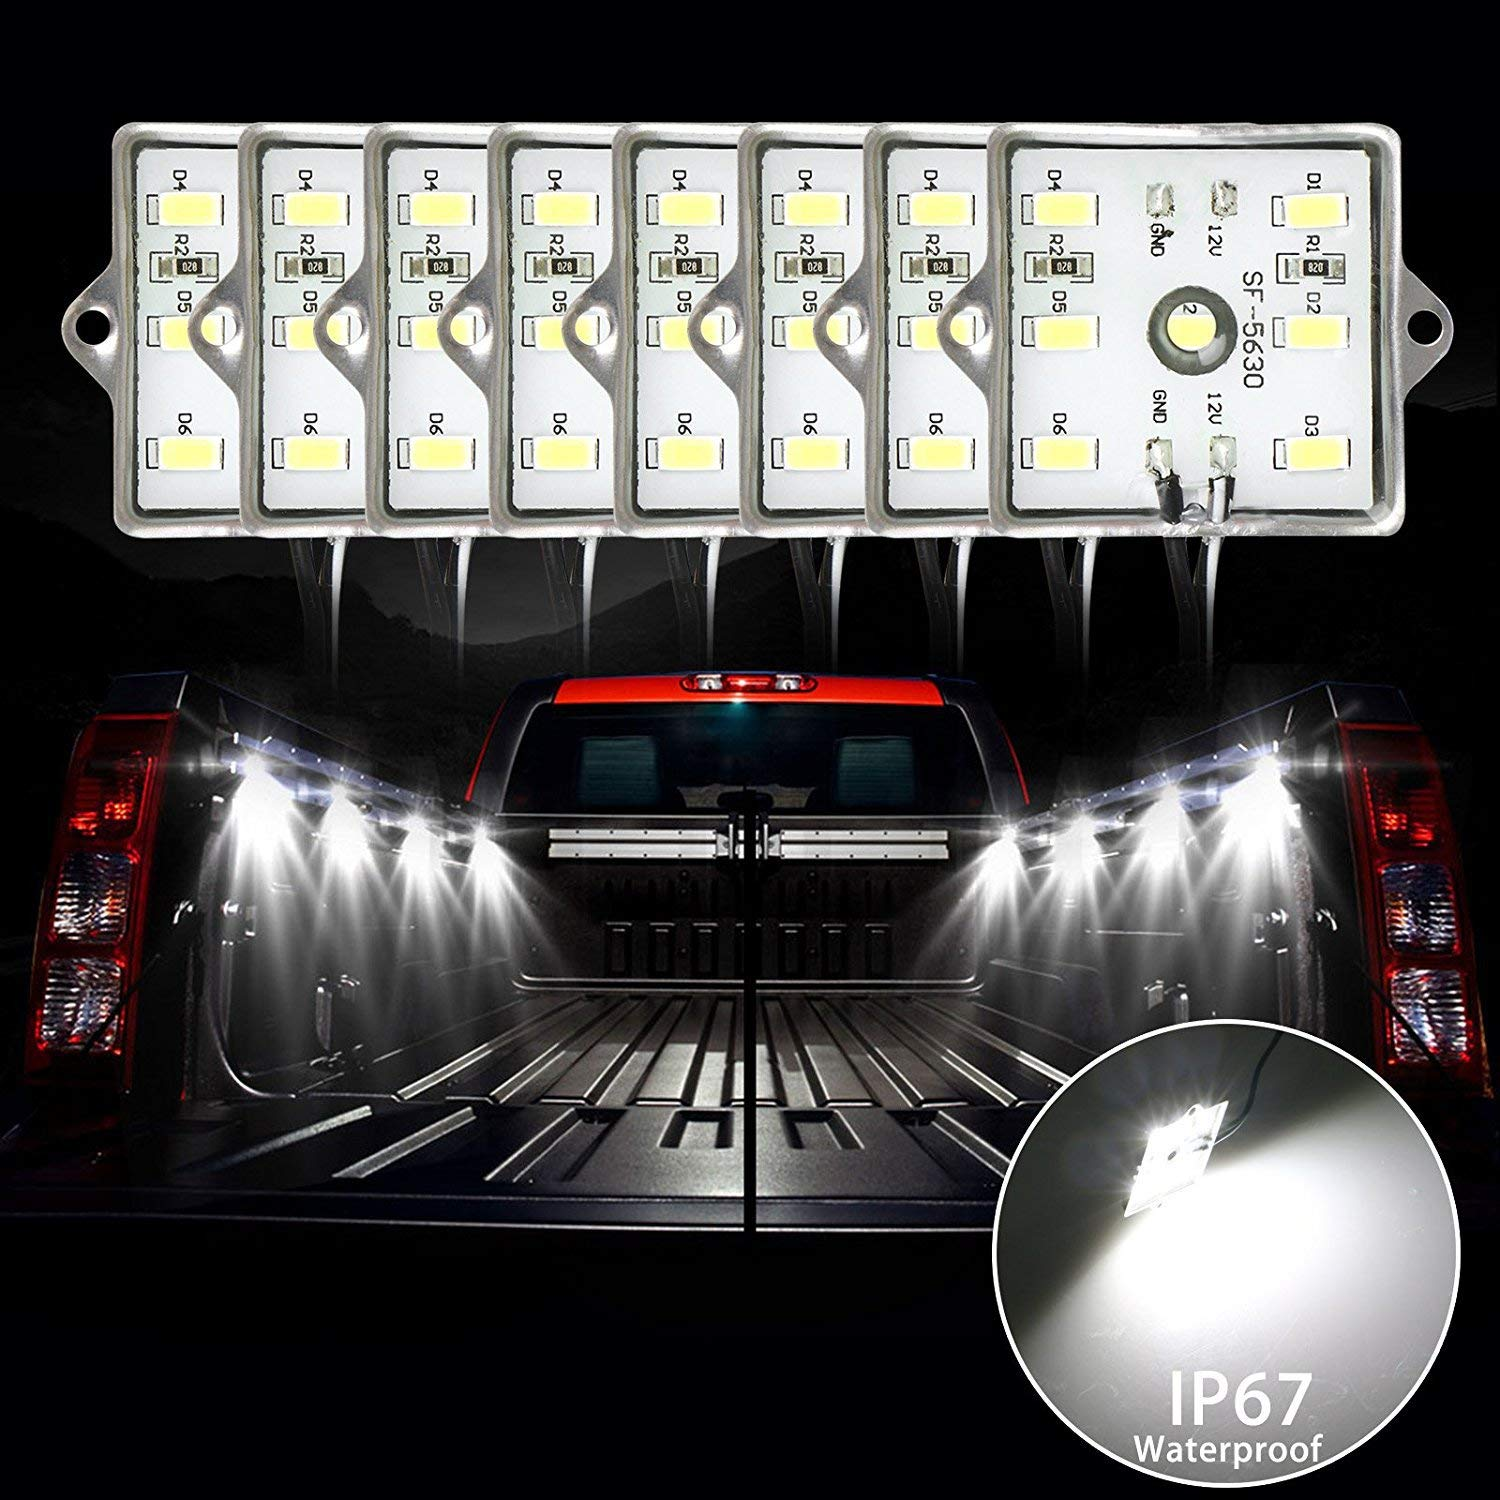 LinkStyle 48 LEDs Truck Bed Light Kit 2Pcs 4 Pods Truck Bed Cargo Lights LED Bed Rail Light Kit with On/Off Switch & IP67 Waterproof for Pickup Truck, RV, SUV, Boats, Unloading Cargo Area- White